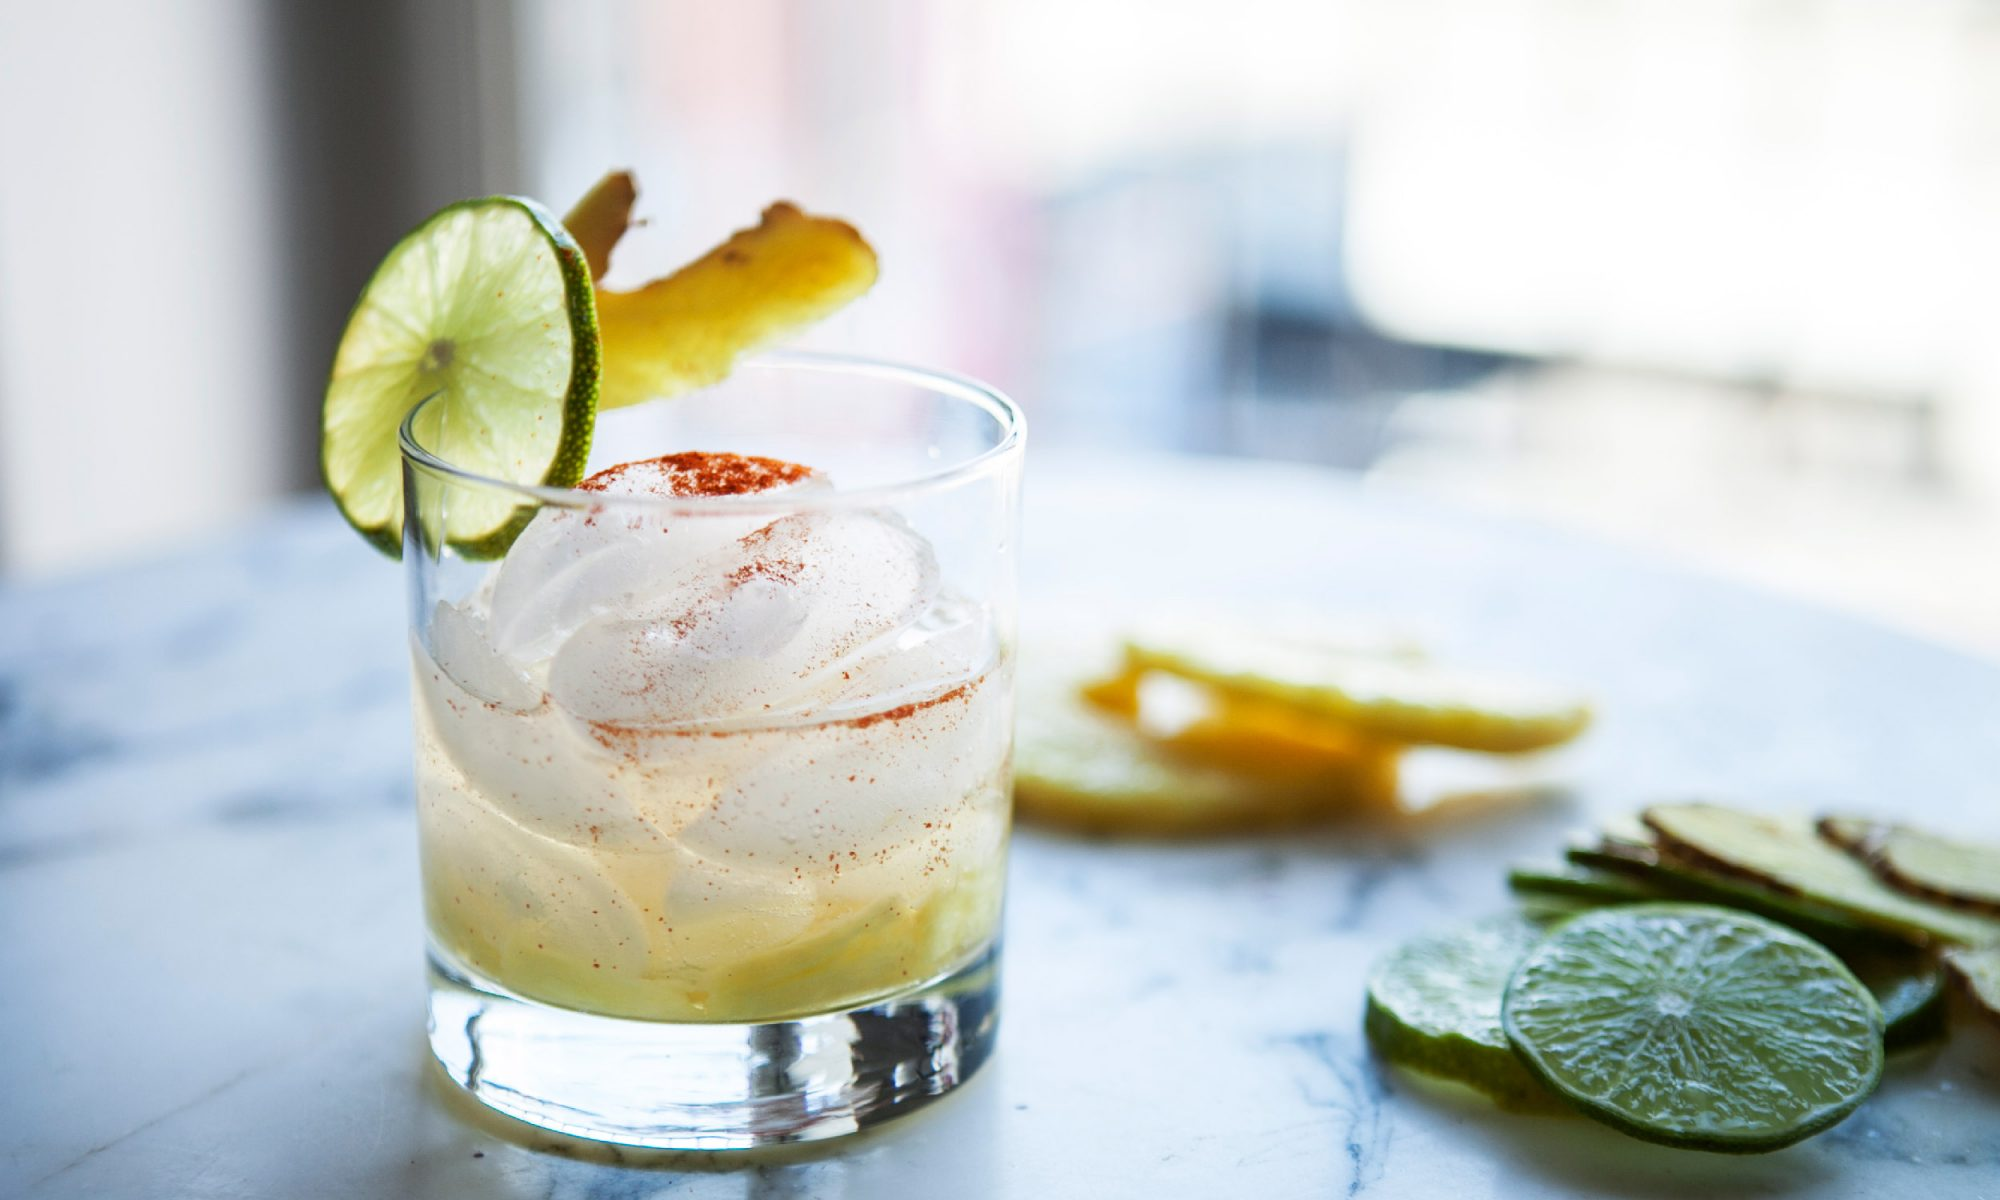 EC: This Cocktail Is Just What the Doctor Ordered